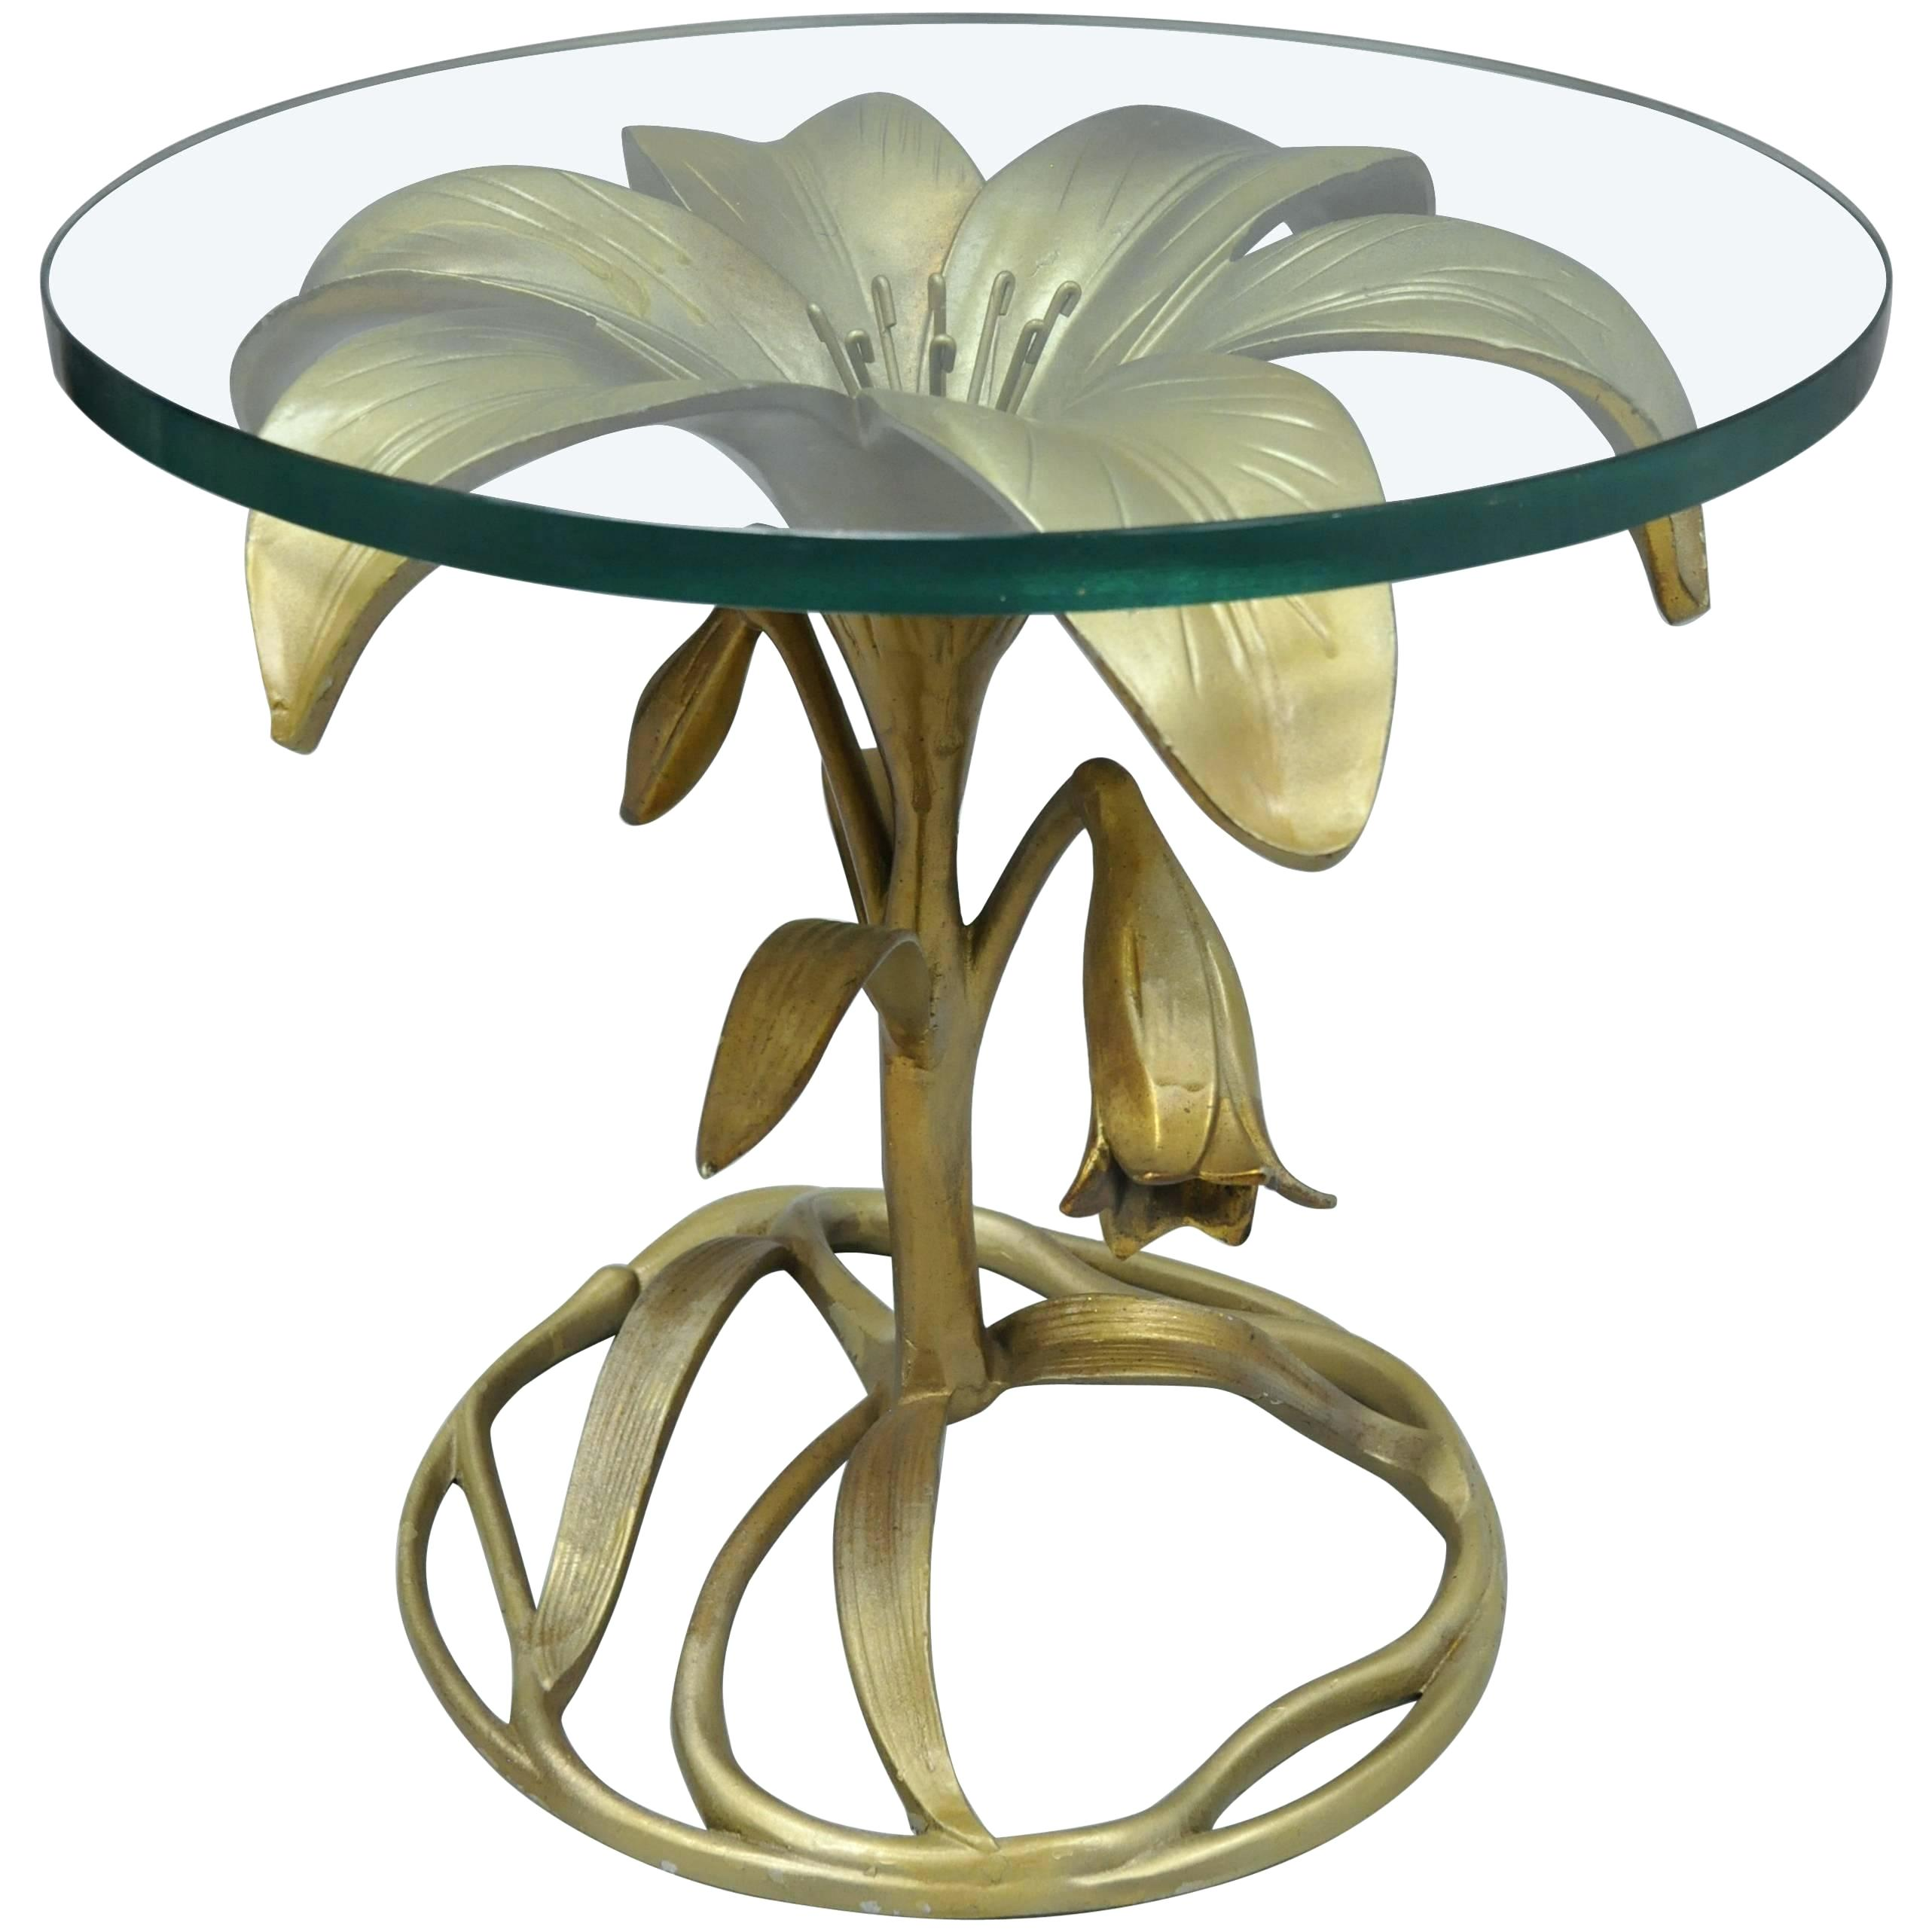 round glass top end table court lily leaf gold flower side cast aluminum for replacement chalk paint dresser ideas plank small navy contemporary sofa tables travertine coffee